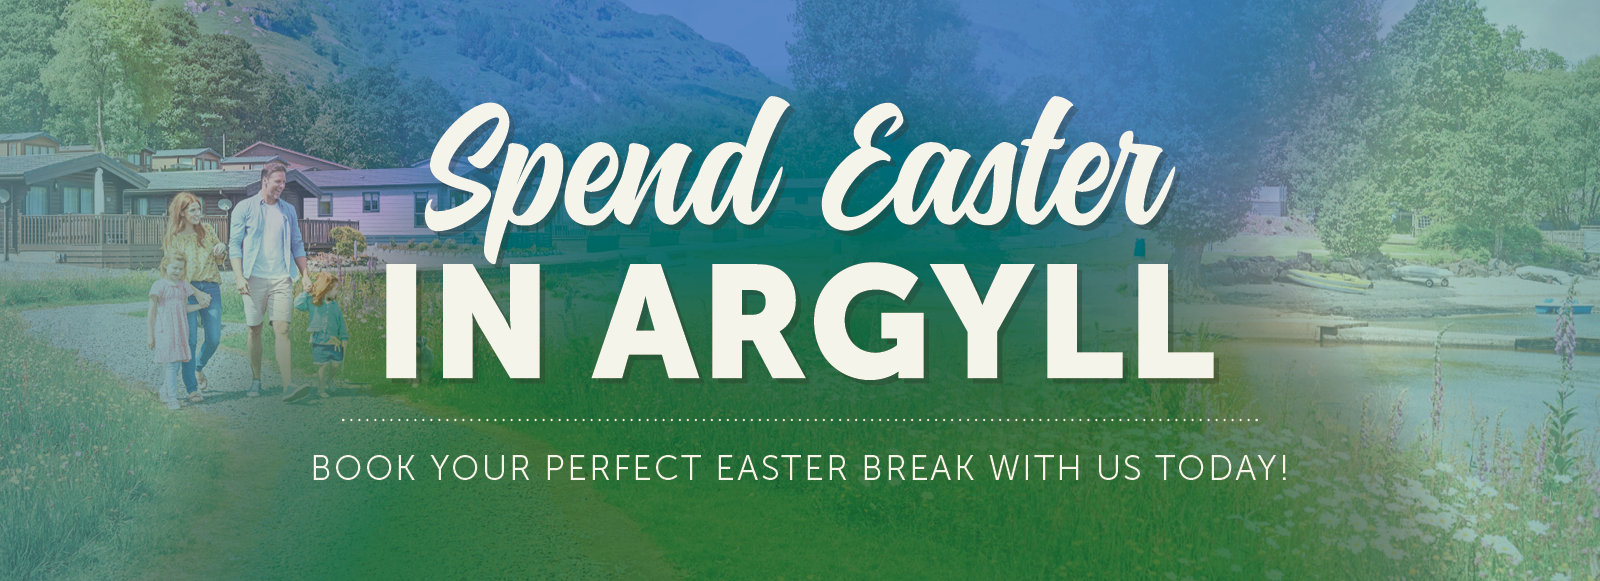 Spend Easter In Argyll